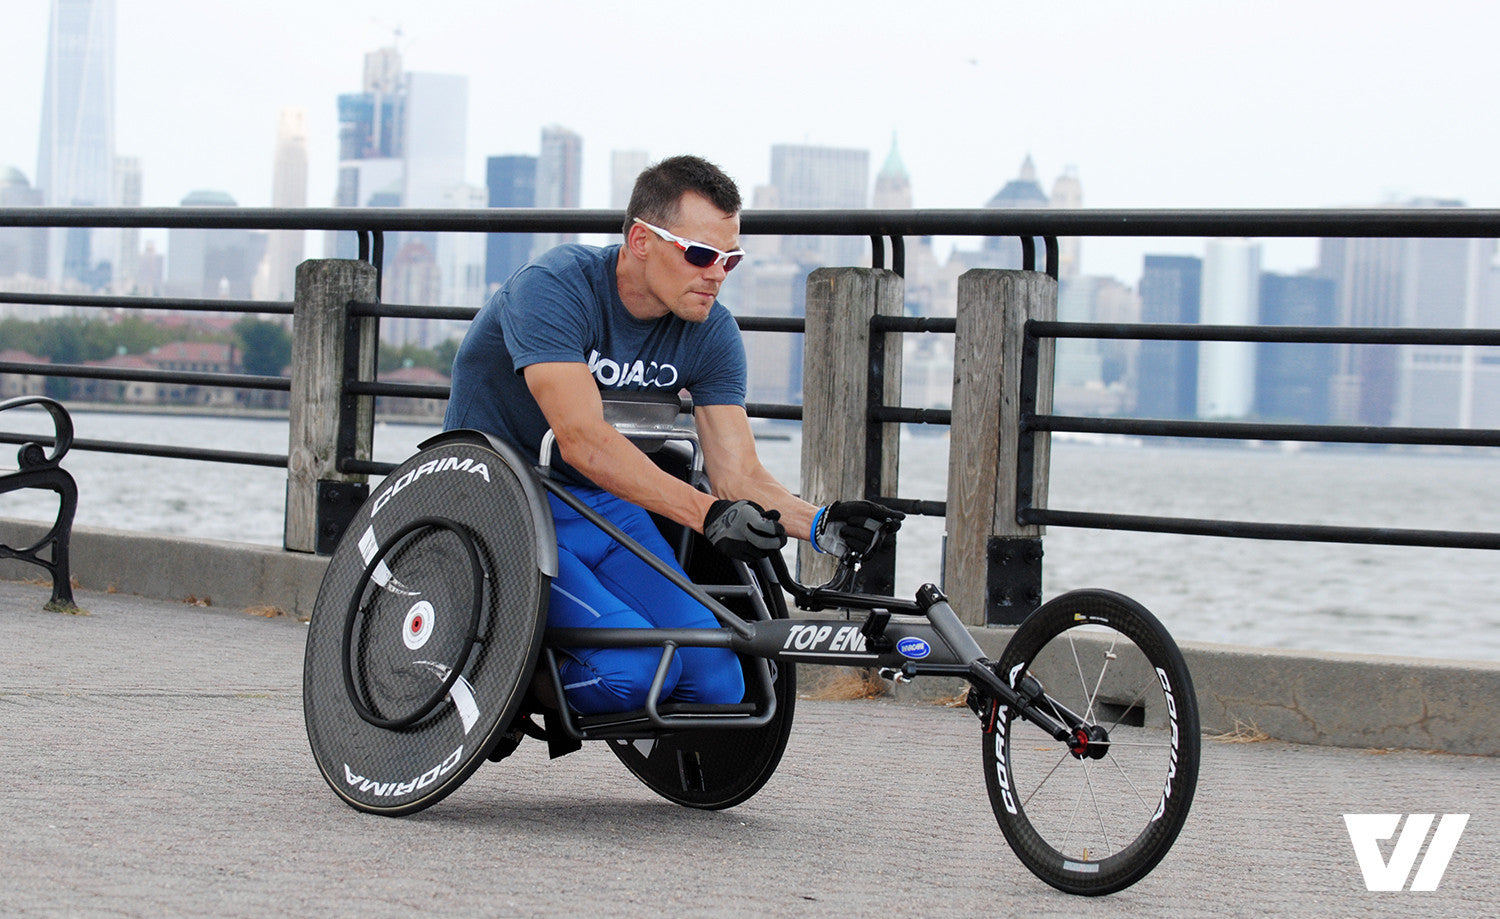 Glenn Hartrick Was Hit by a Car and Paralyzed from the Chest Down. Now He's About to Make NYC Marathon History.